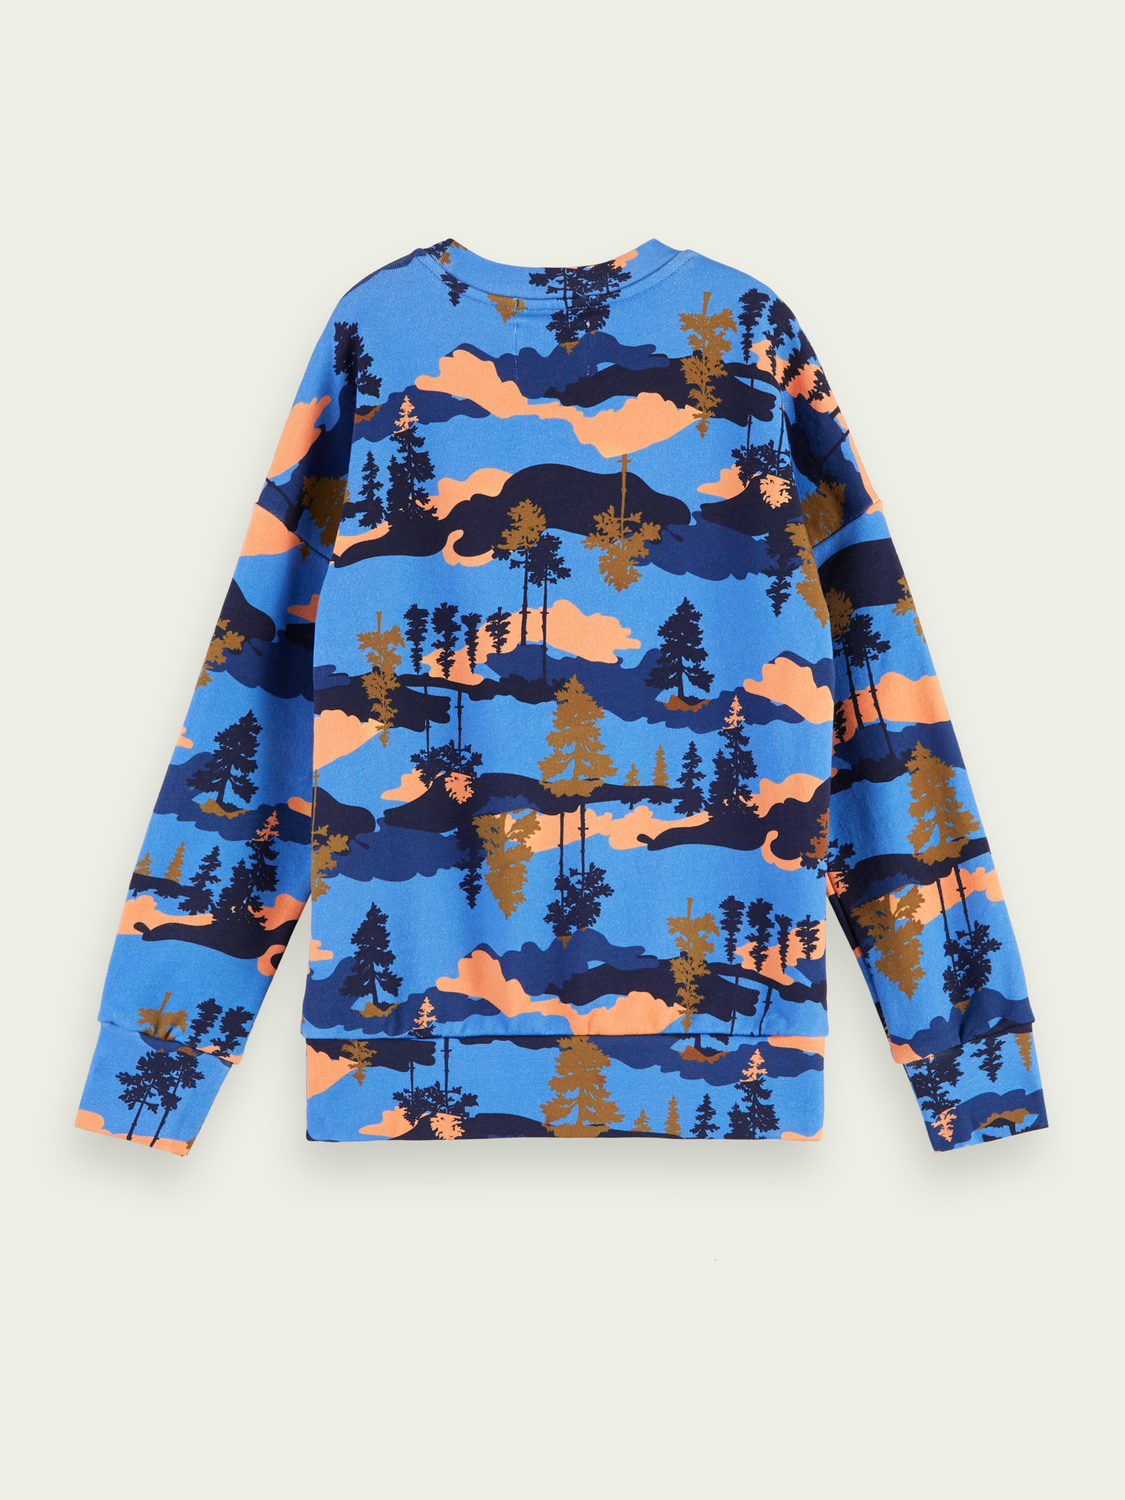 Boys Outdoor-inspired printed sweatshirt